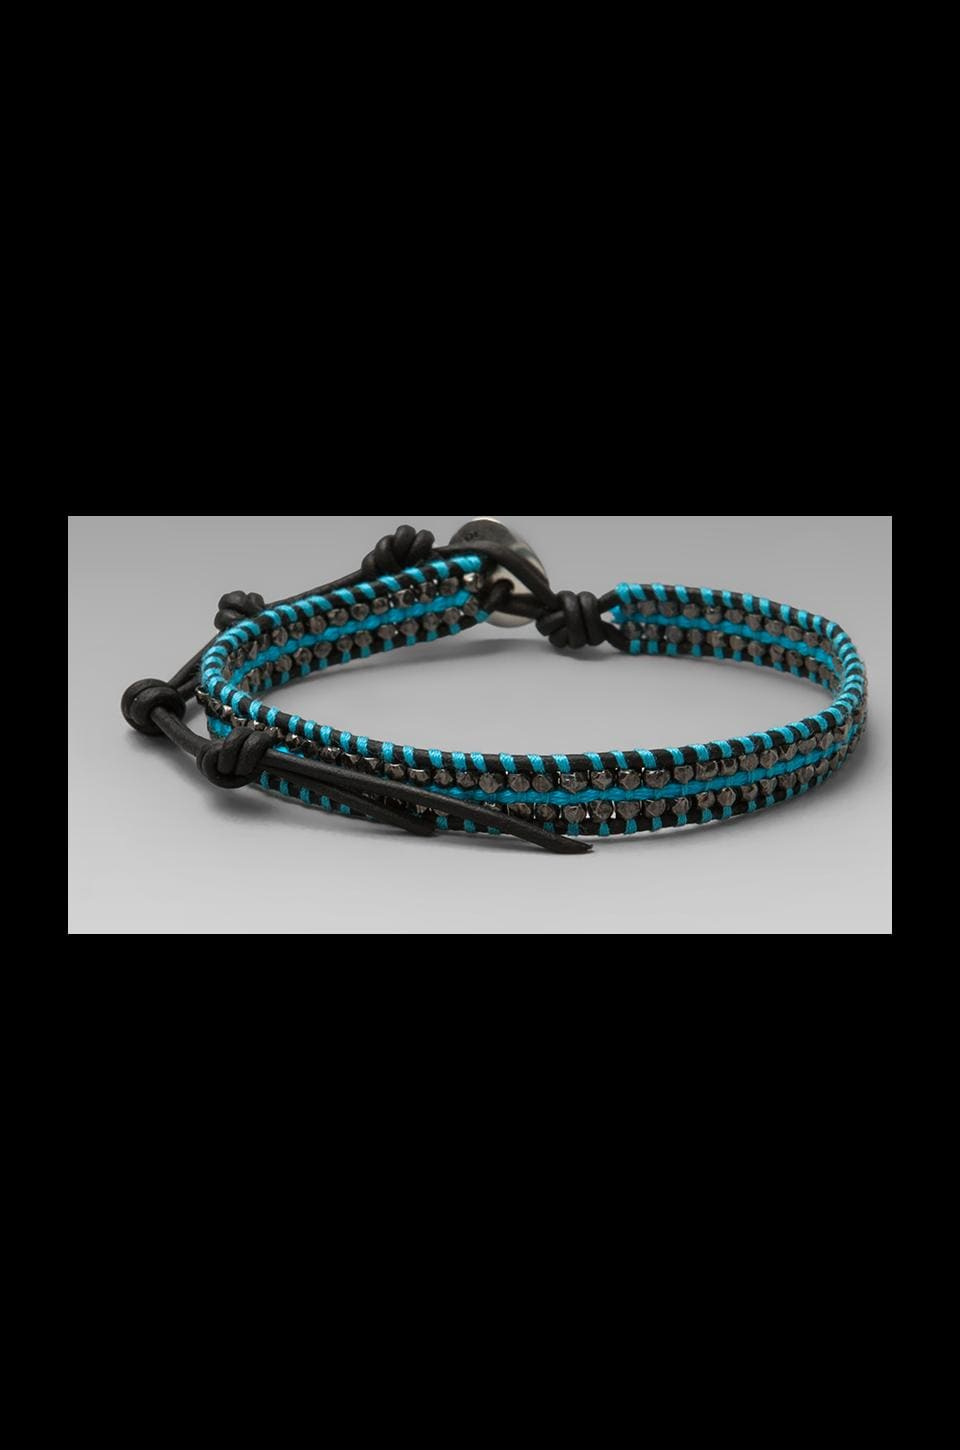 CHAN LUU Bracelet in Neon Blue/Natural Black